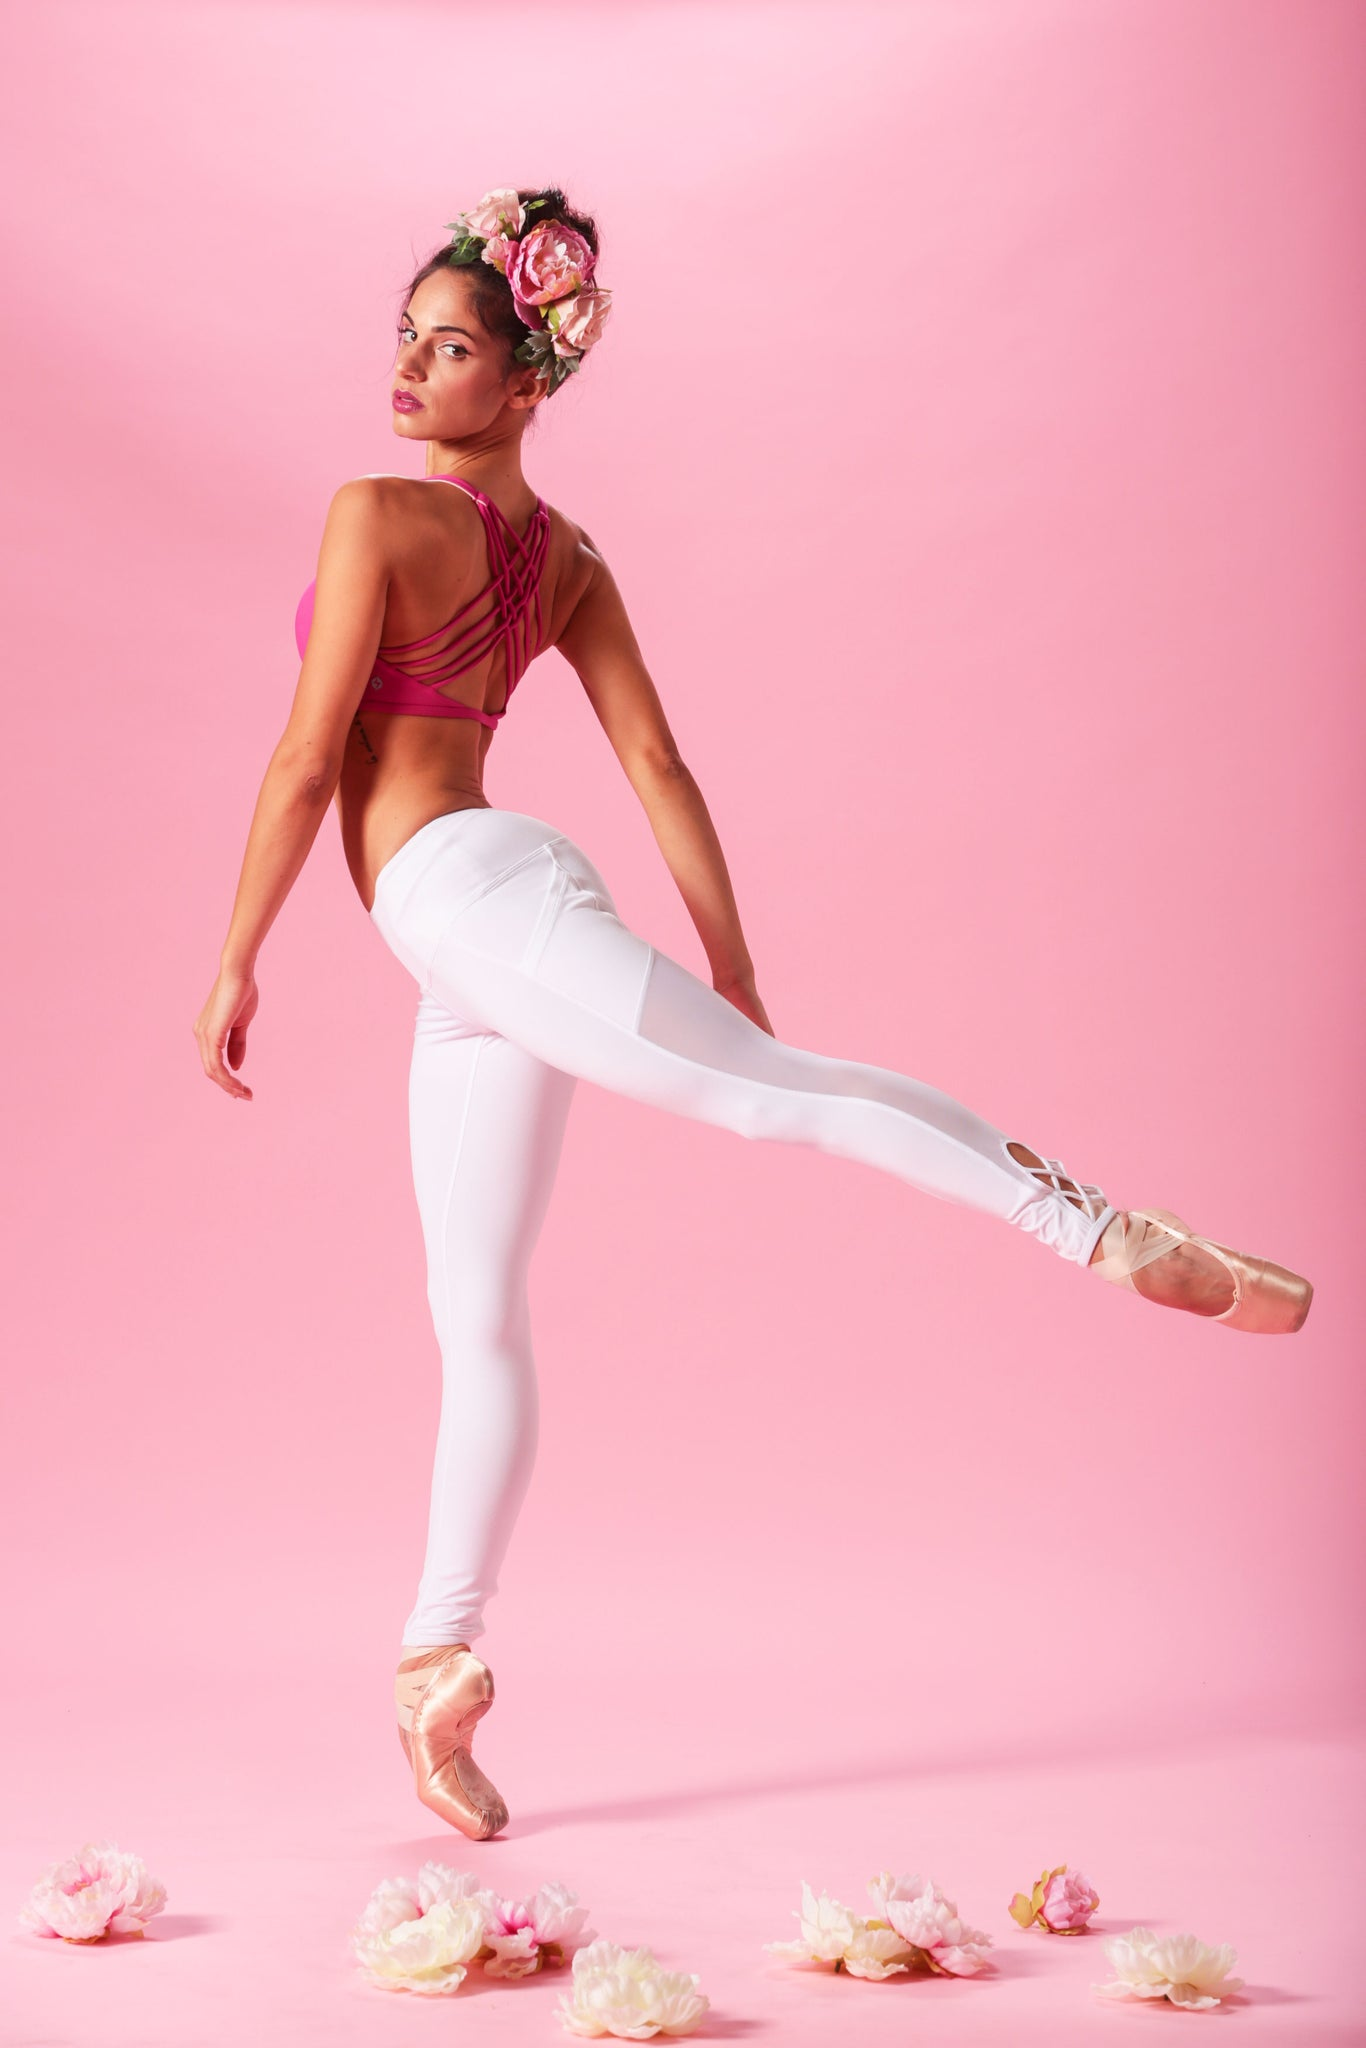 Meet The Models Kylie Shea Professional Ballerina Popflex Ballet Dance Moves Diagram There Are So Many Disciplines Of Dancewhy